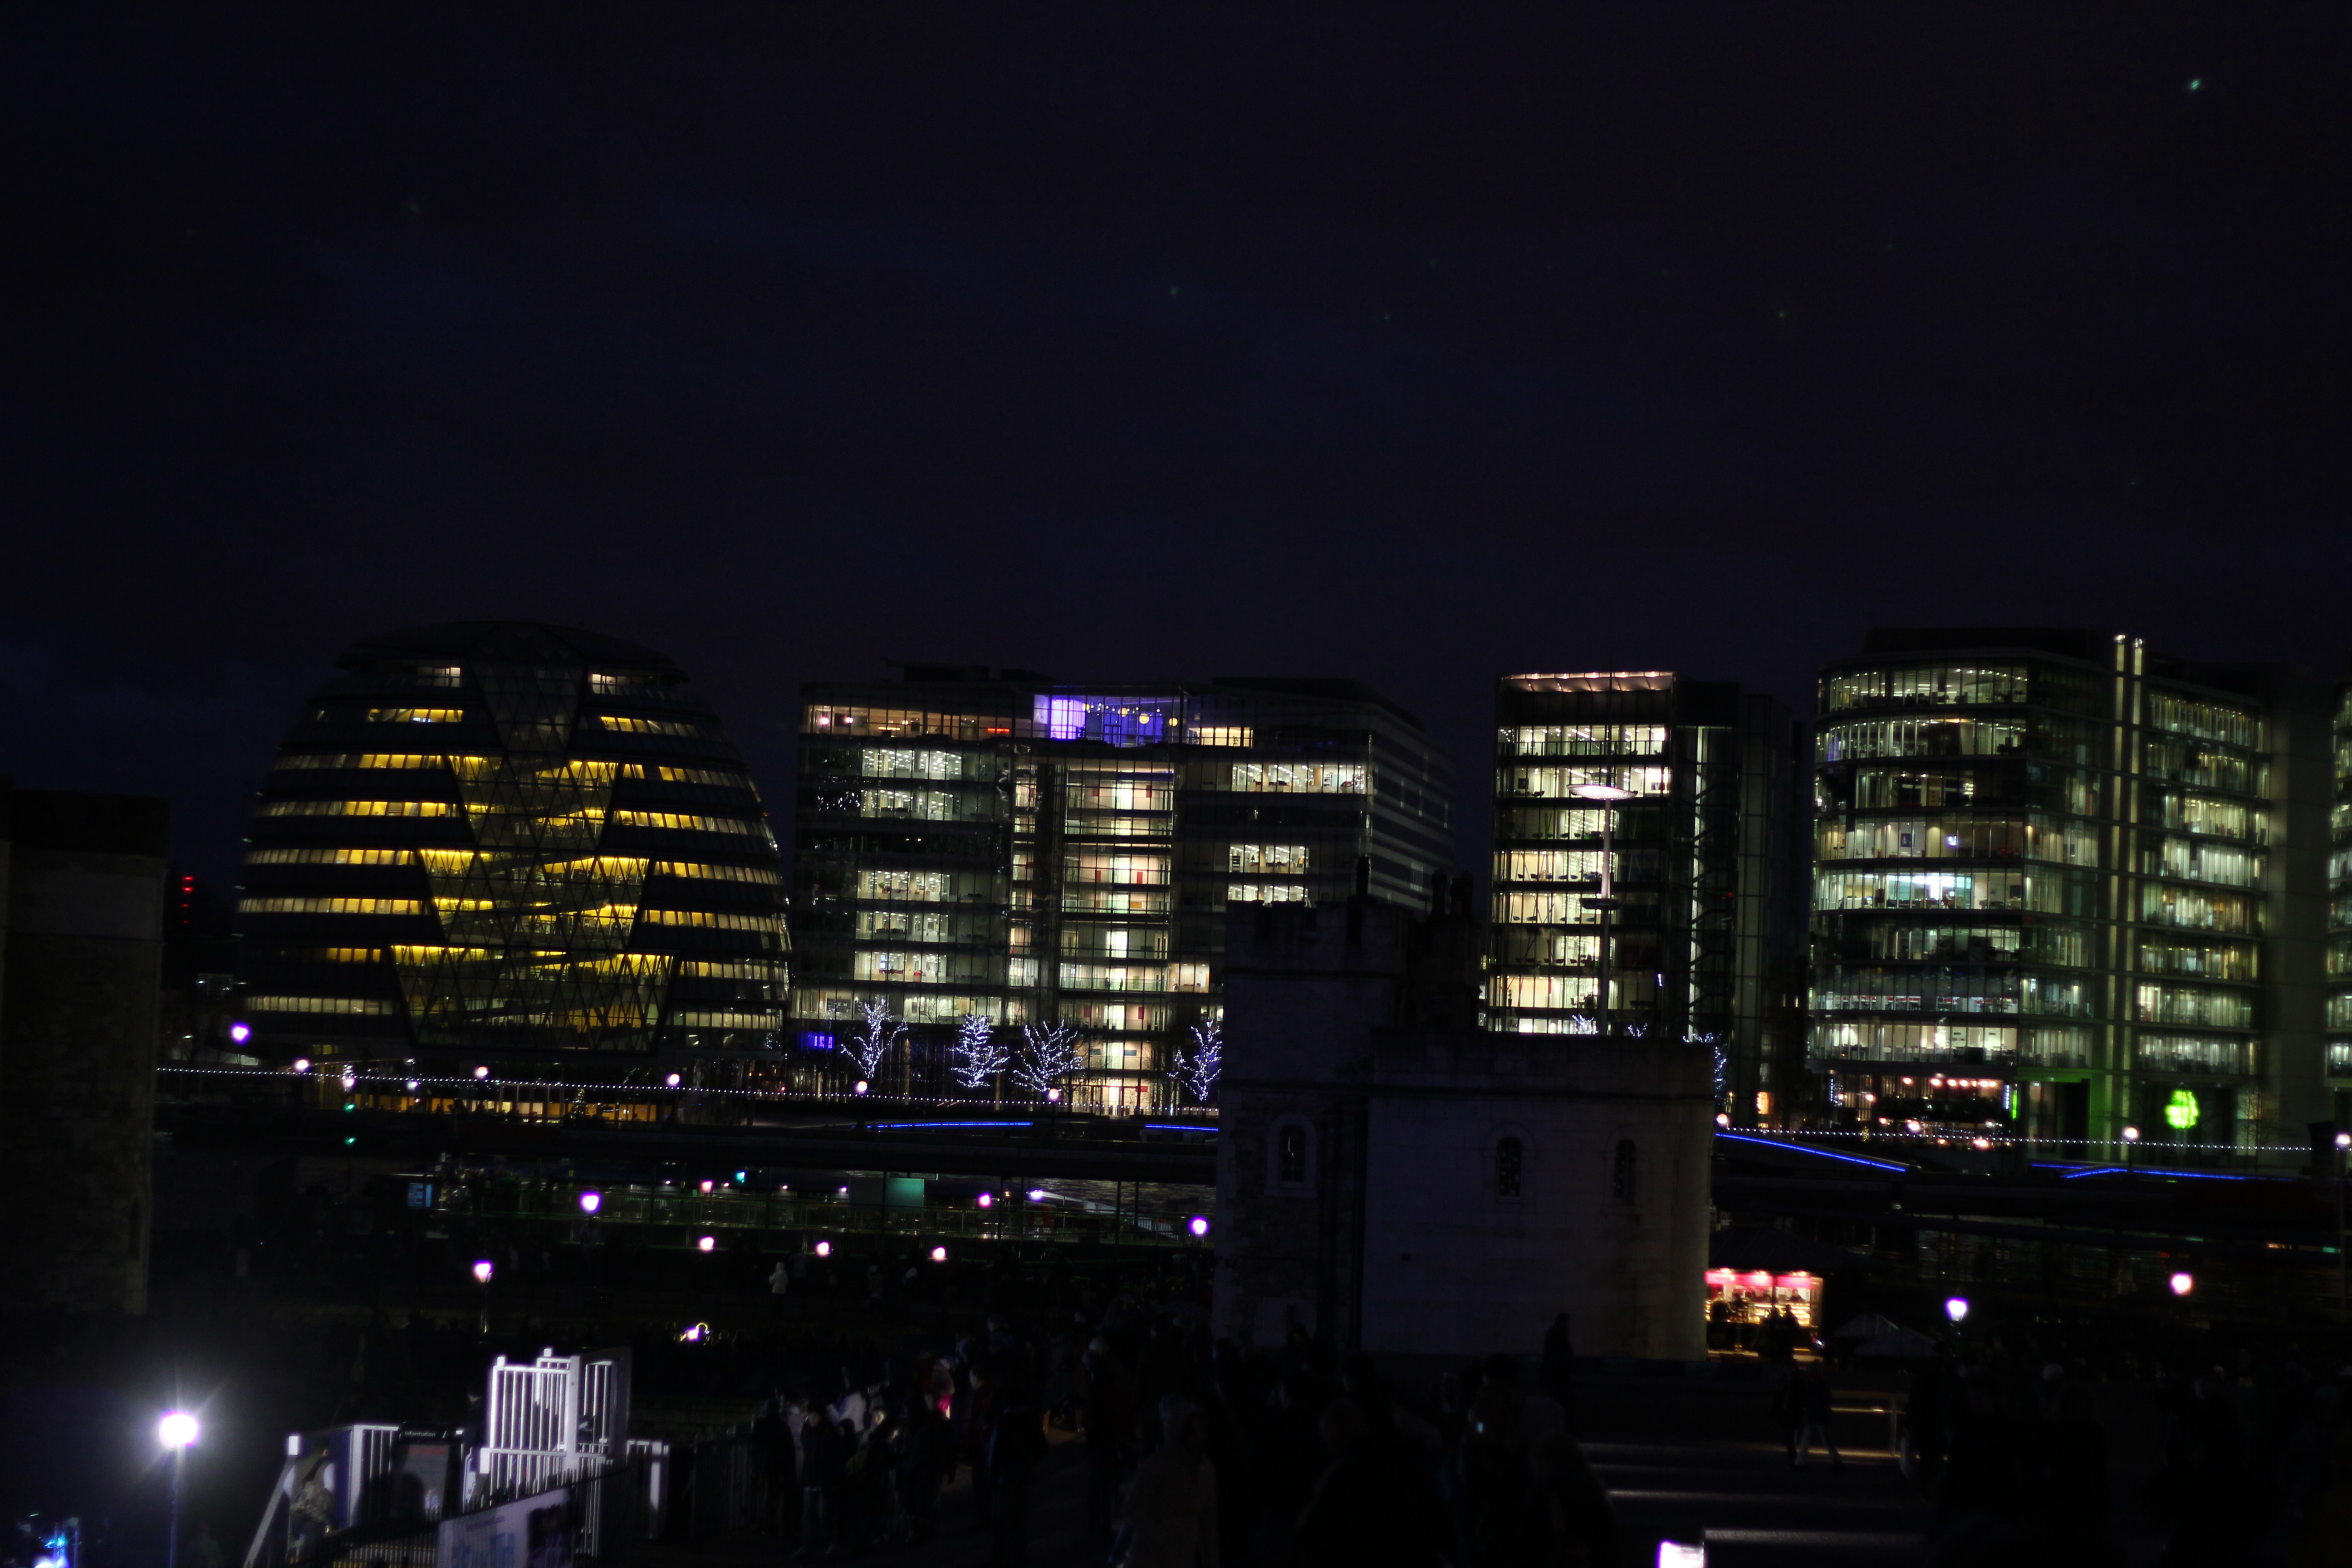 London by Night by Wfate